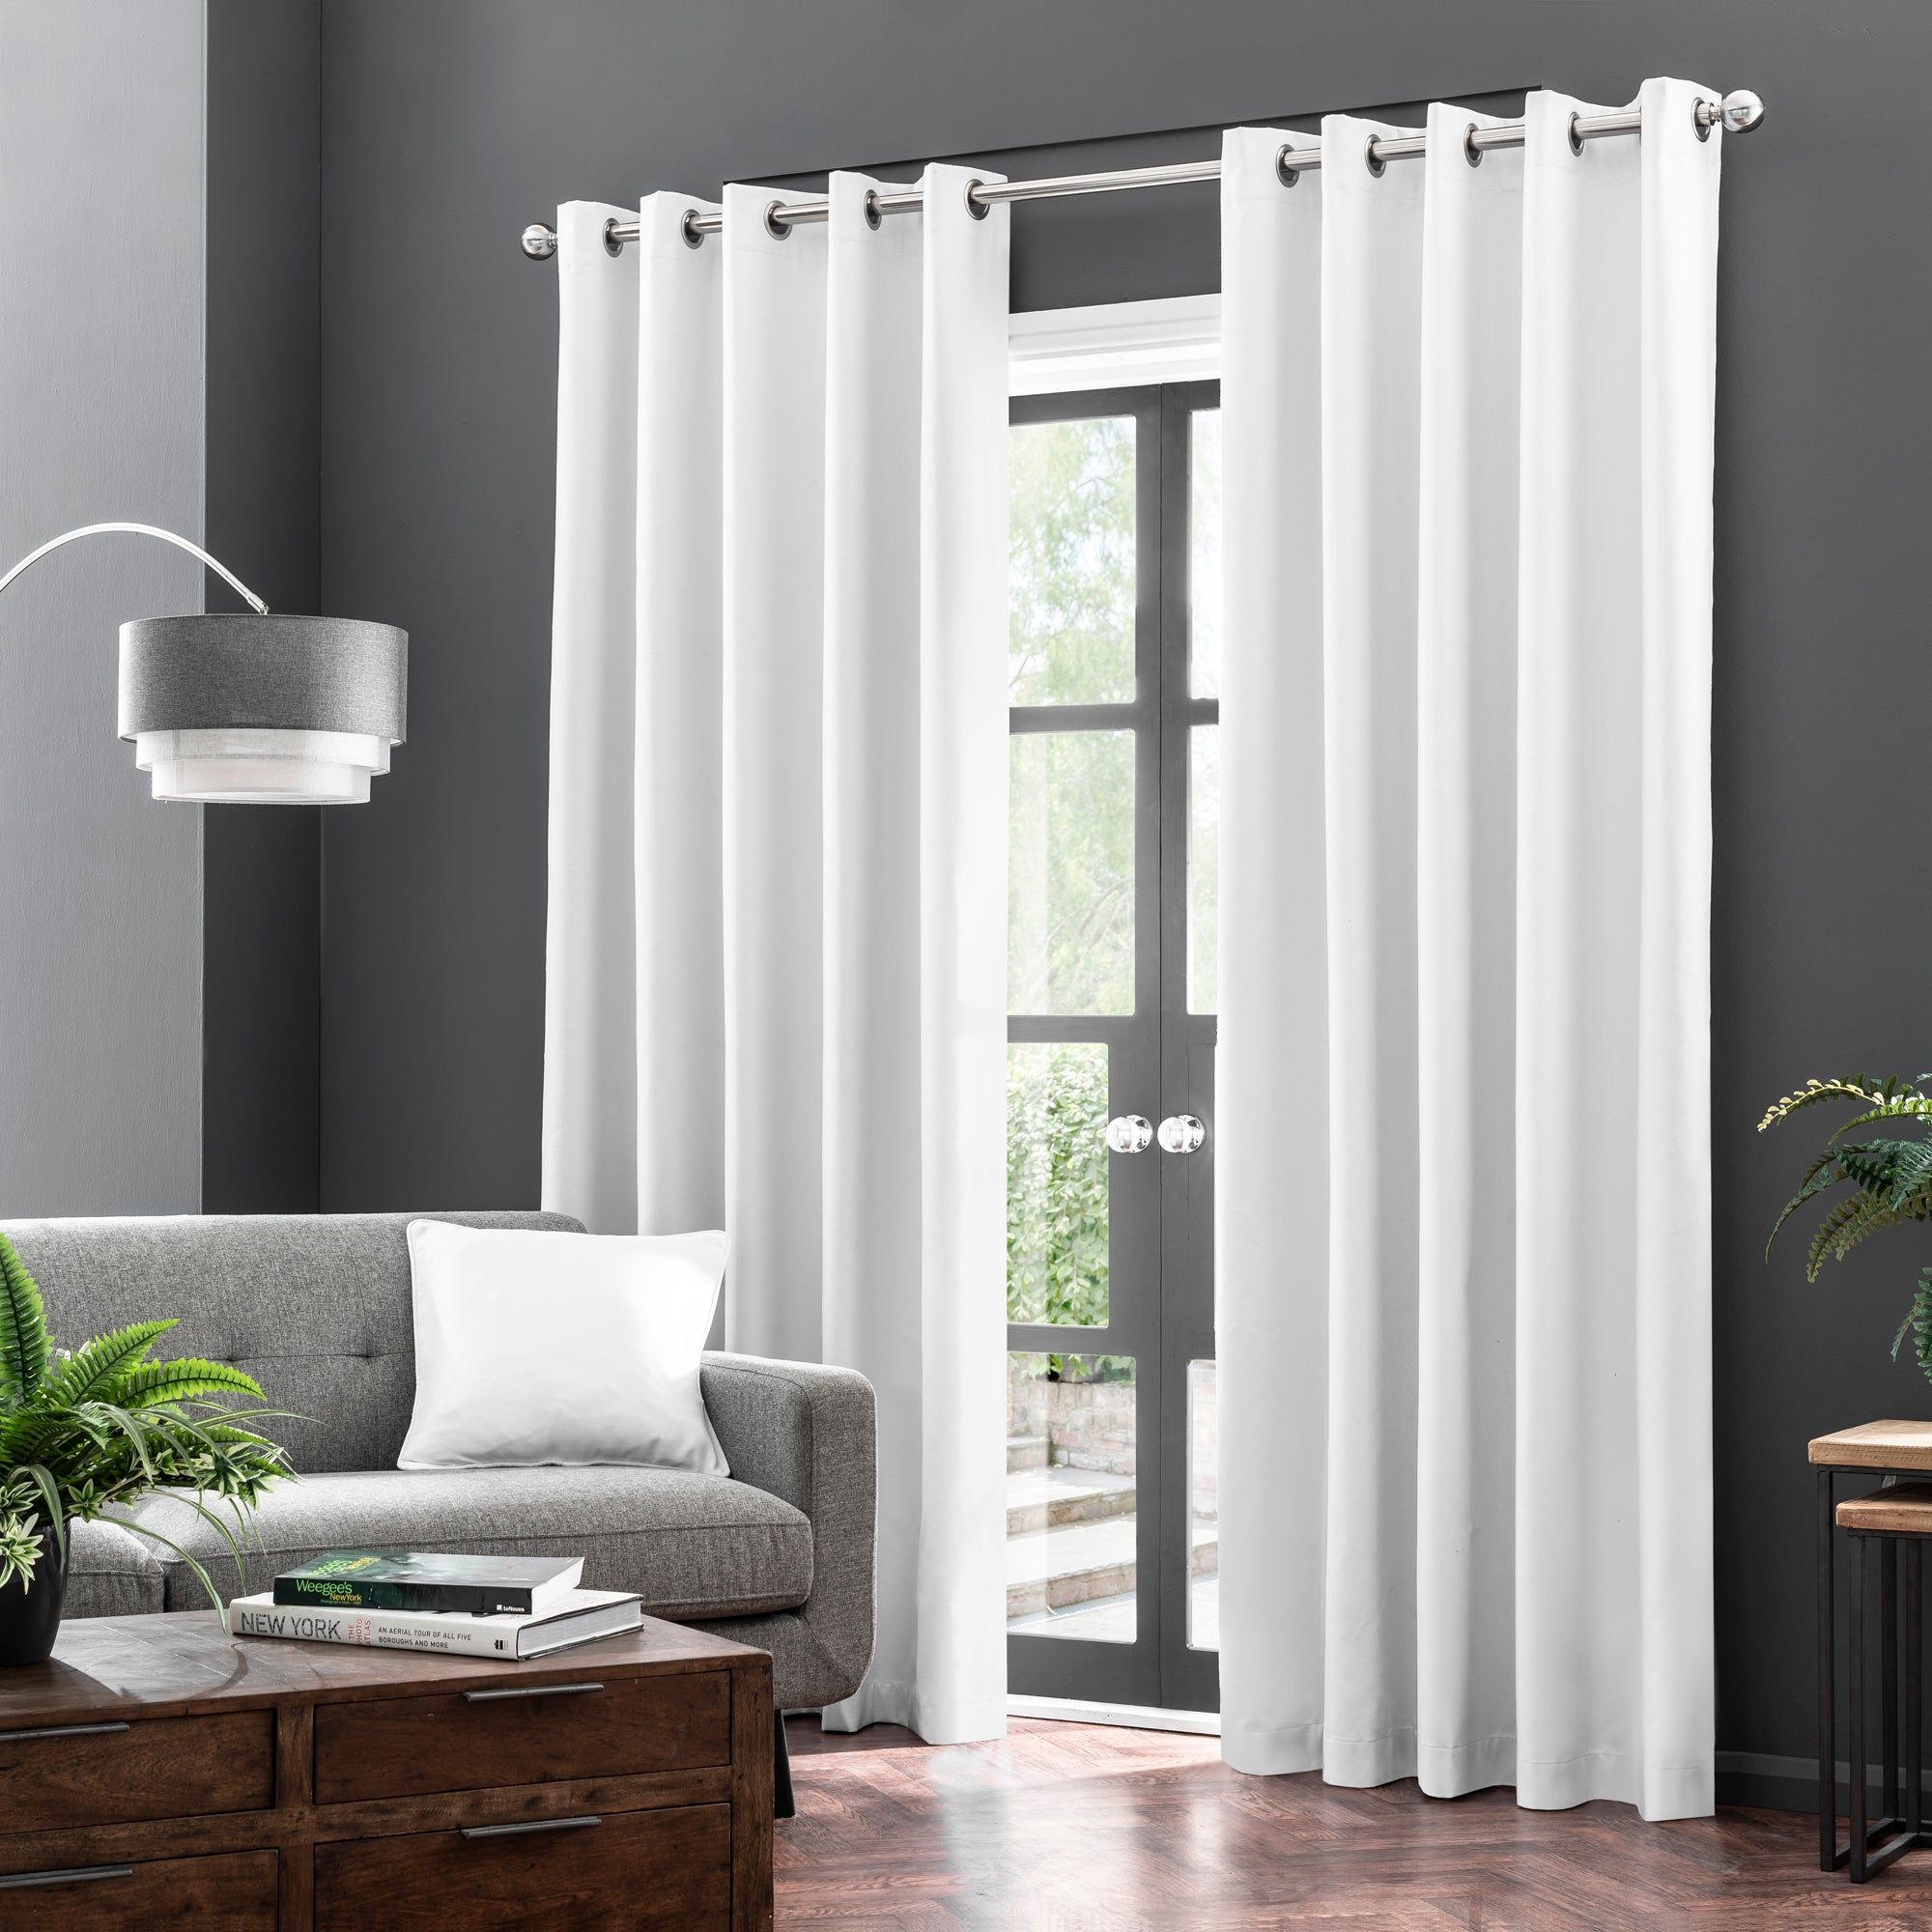 2x Blackout Curtains Eyelet Ring Top Living Room Bedroom Patio Outdoor Curtains